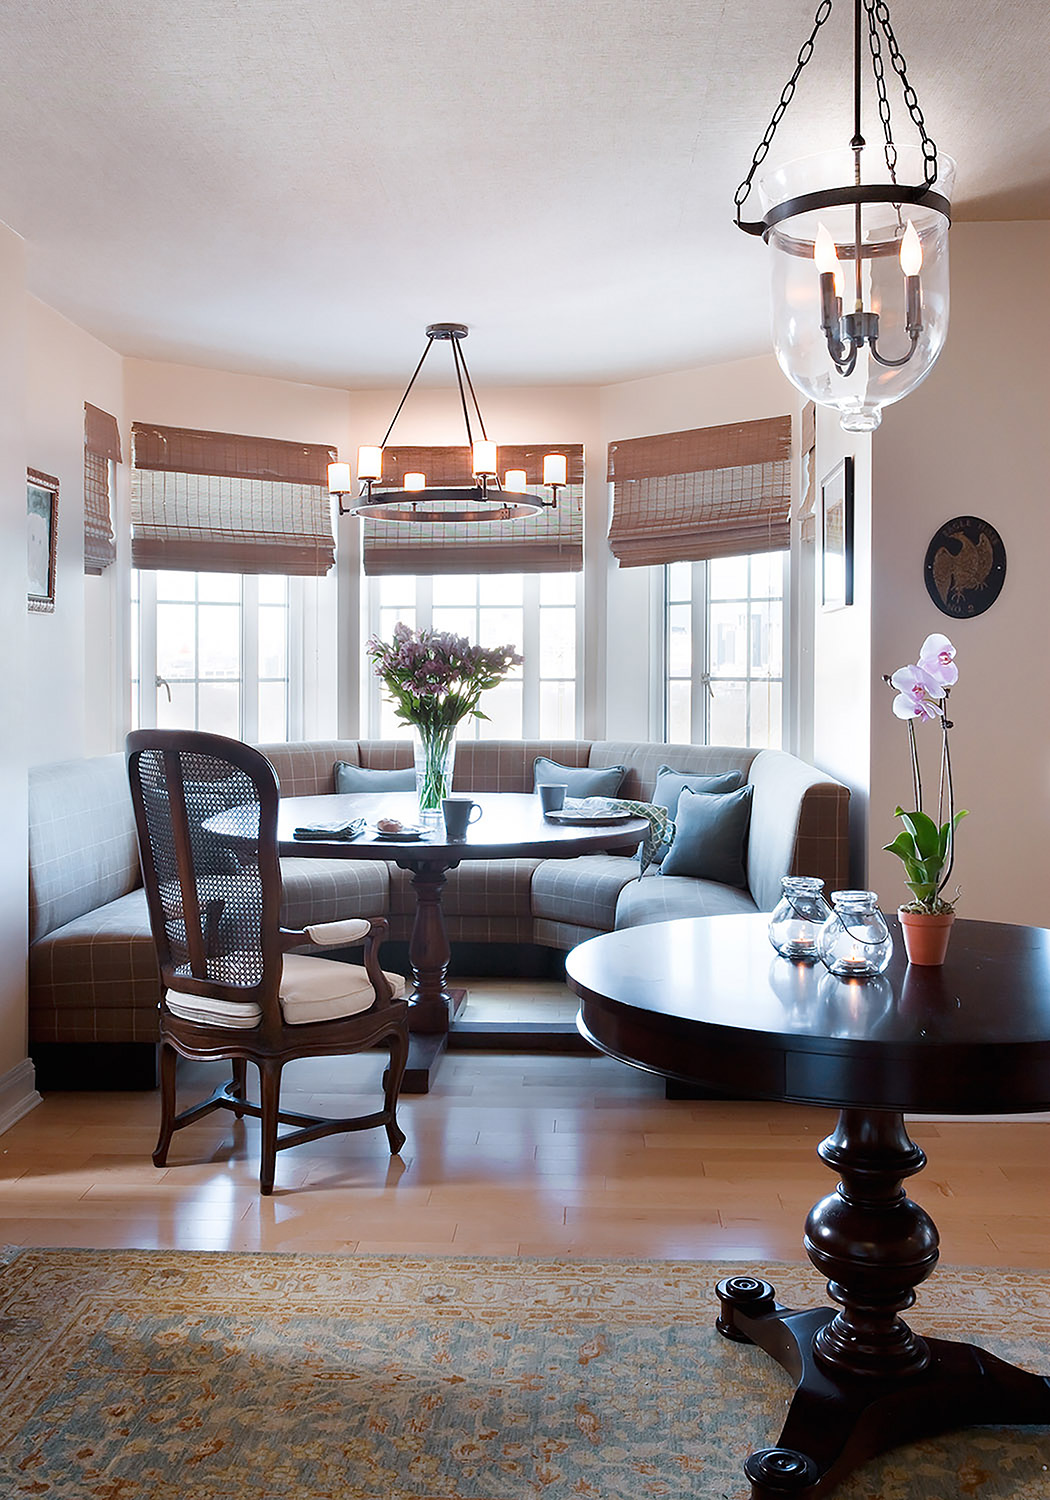 lorla studio_boston_entry_banquette.jpg